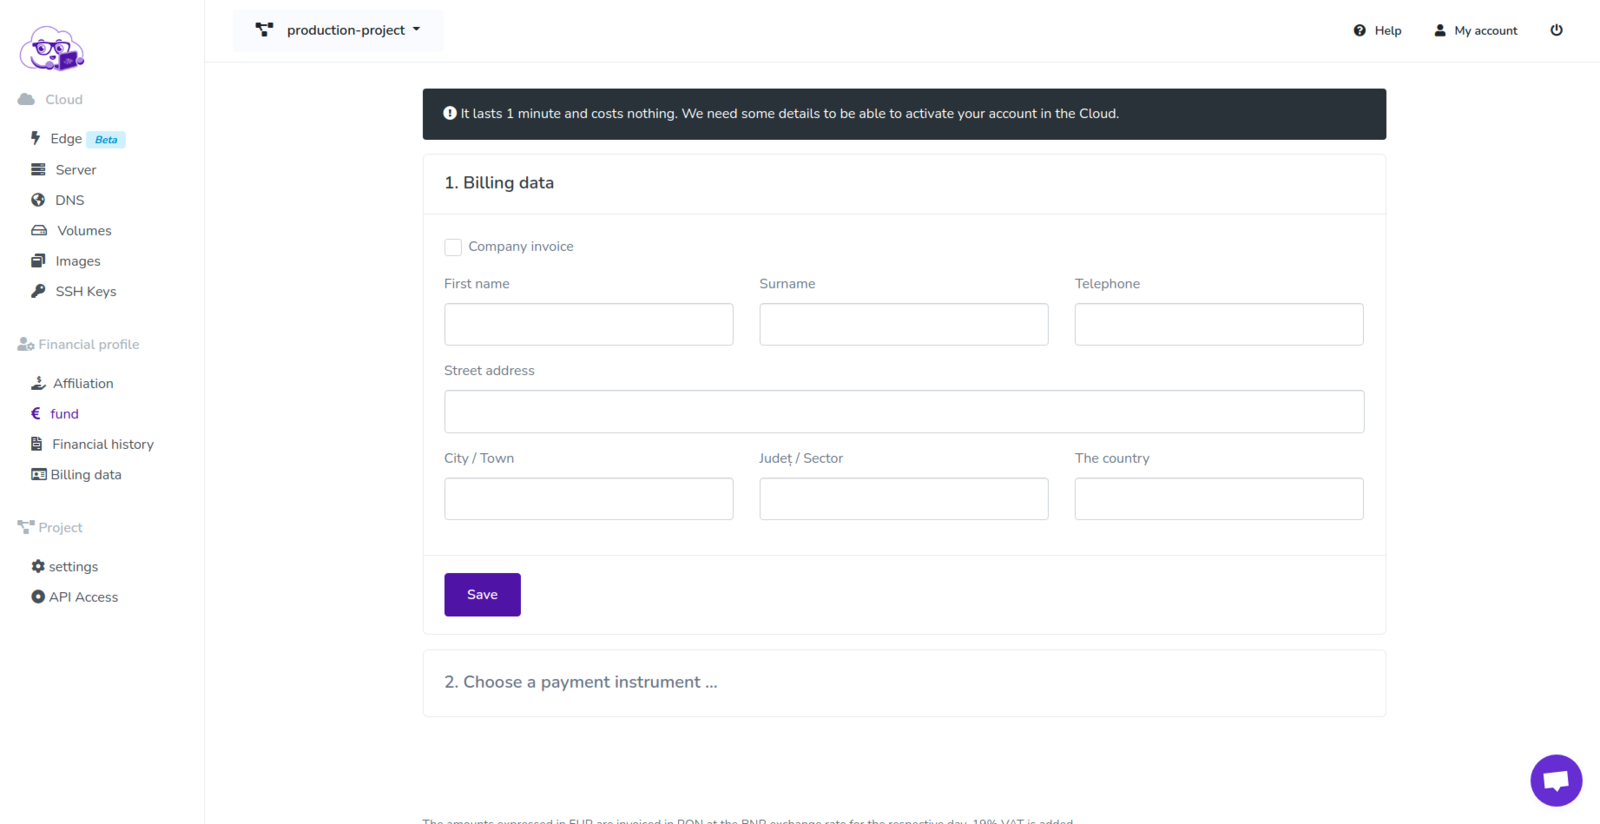 Funds page